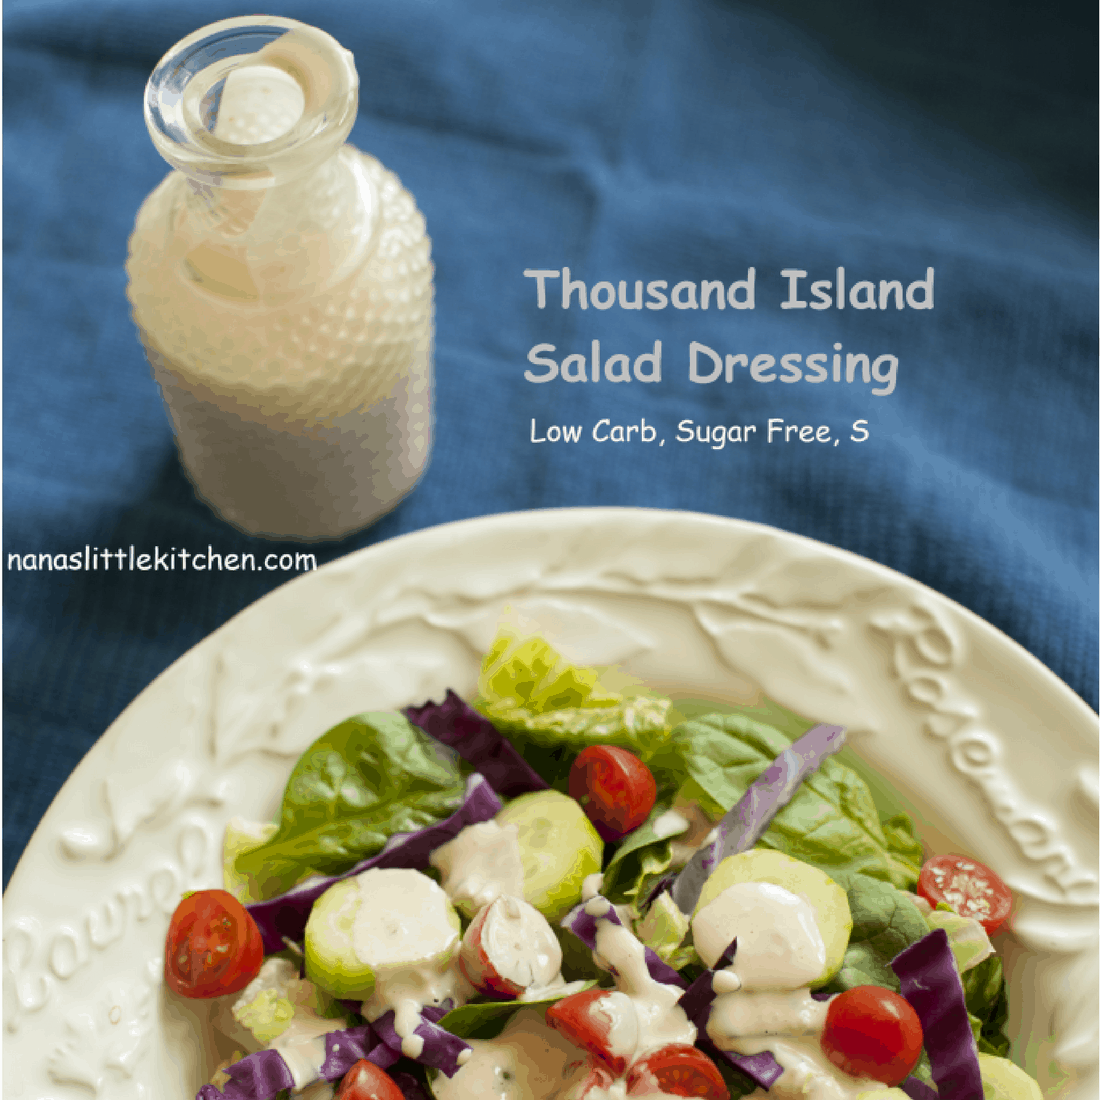 Thousand Island Salad Dressing (Sugar Free, S)